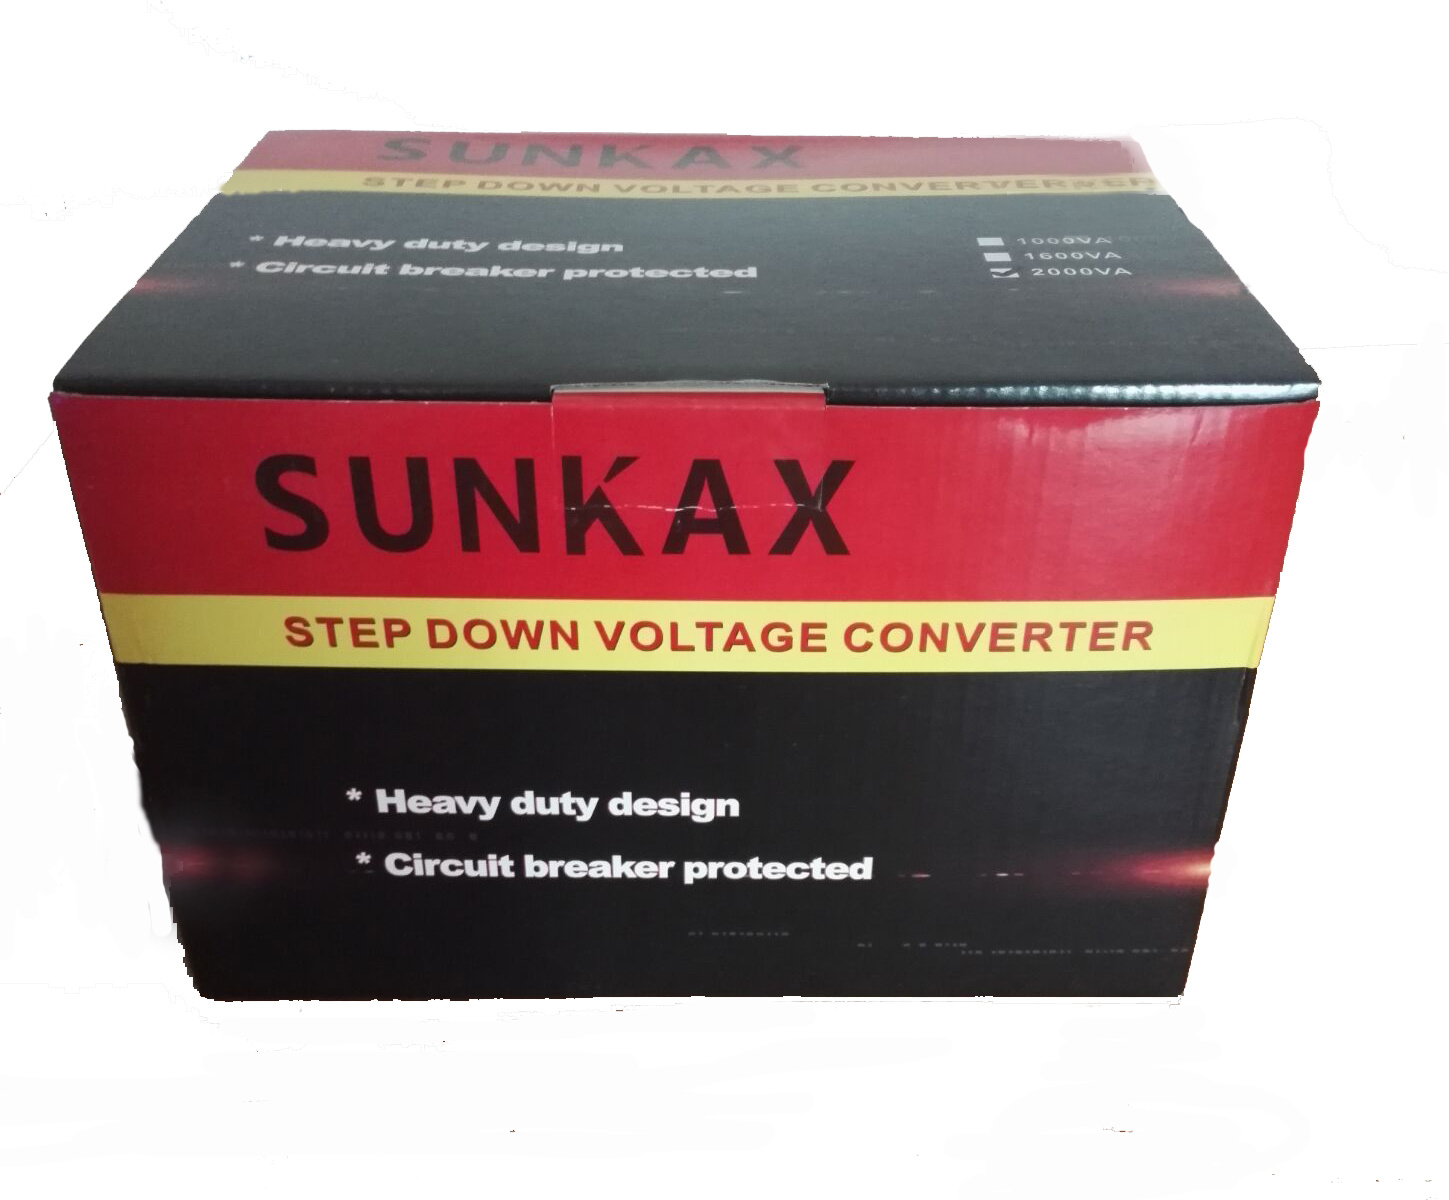 China Sunkax 220v To 110v Step Down Transformer For Home Use Photos Up Circuit Breaker Protection